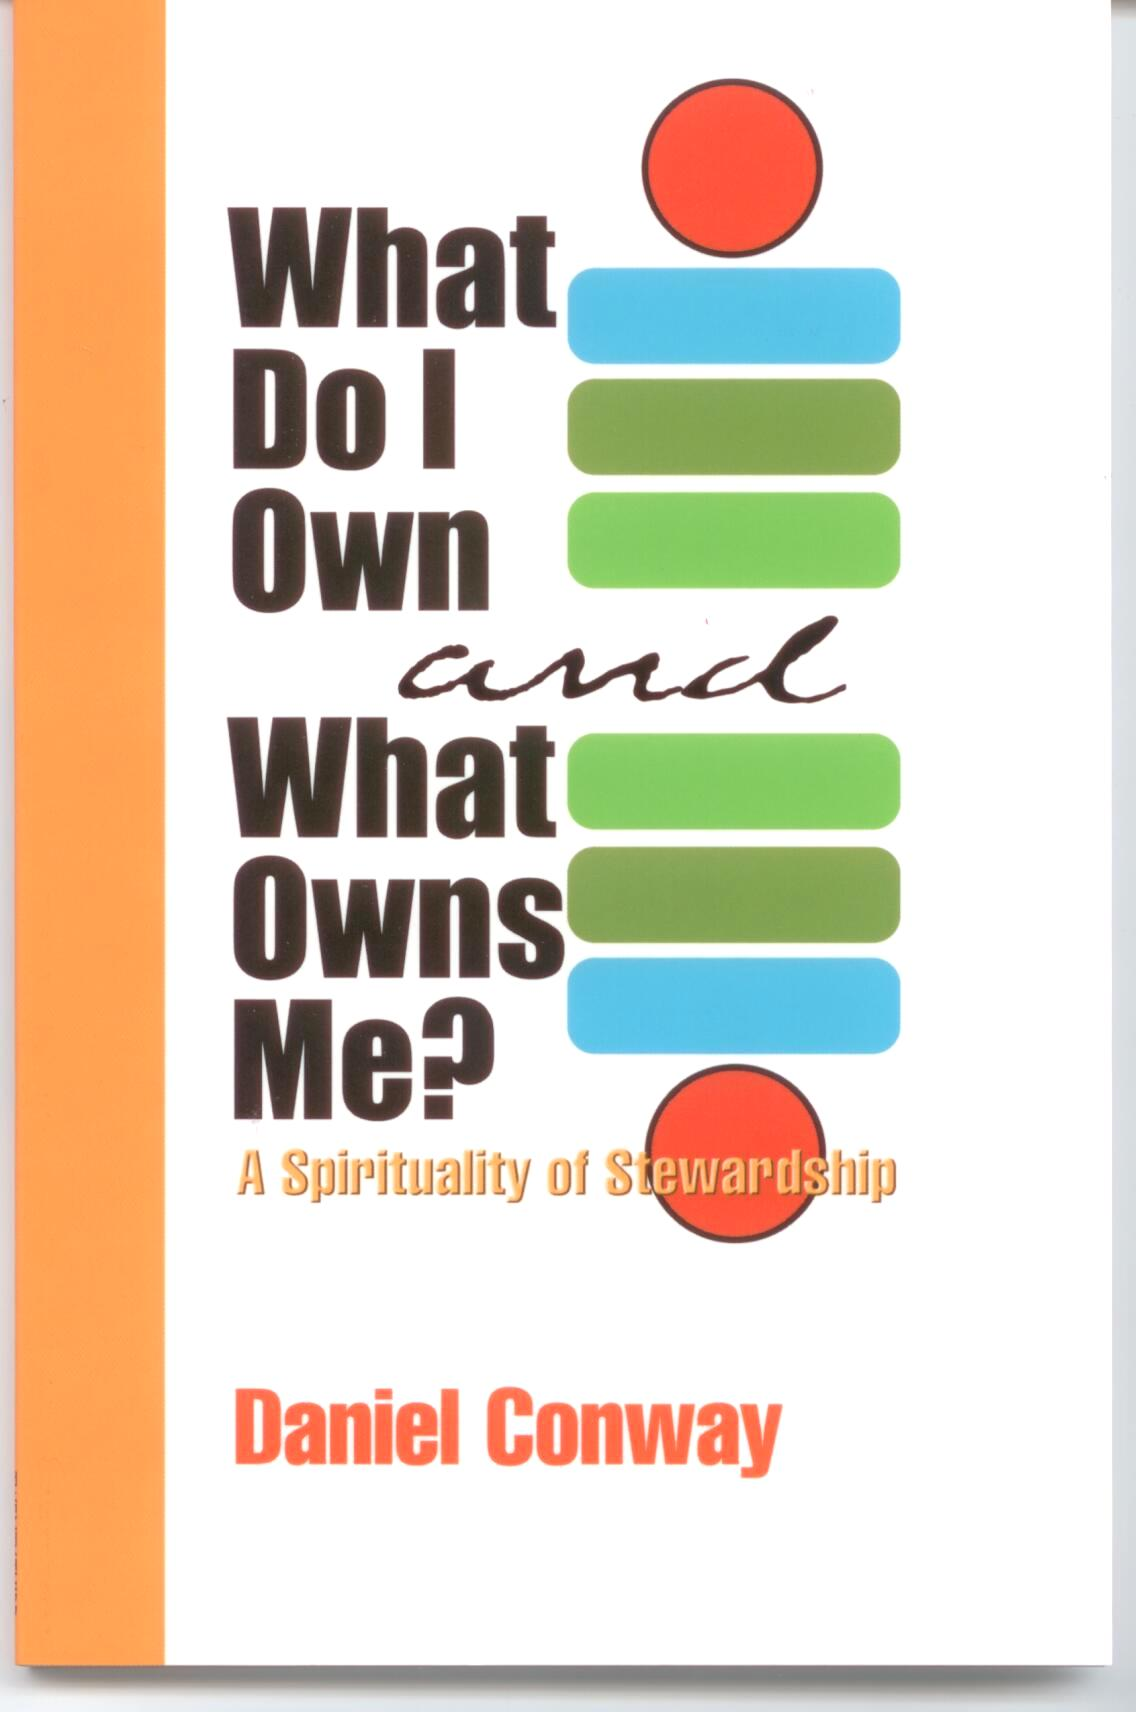 What Do I Own and What Owns Me? by Daniel Conway